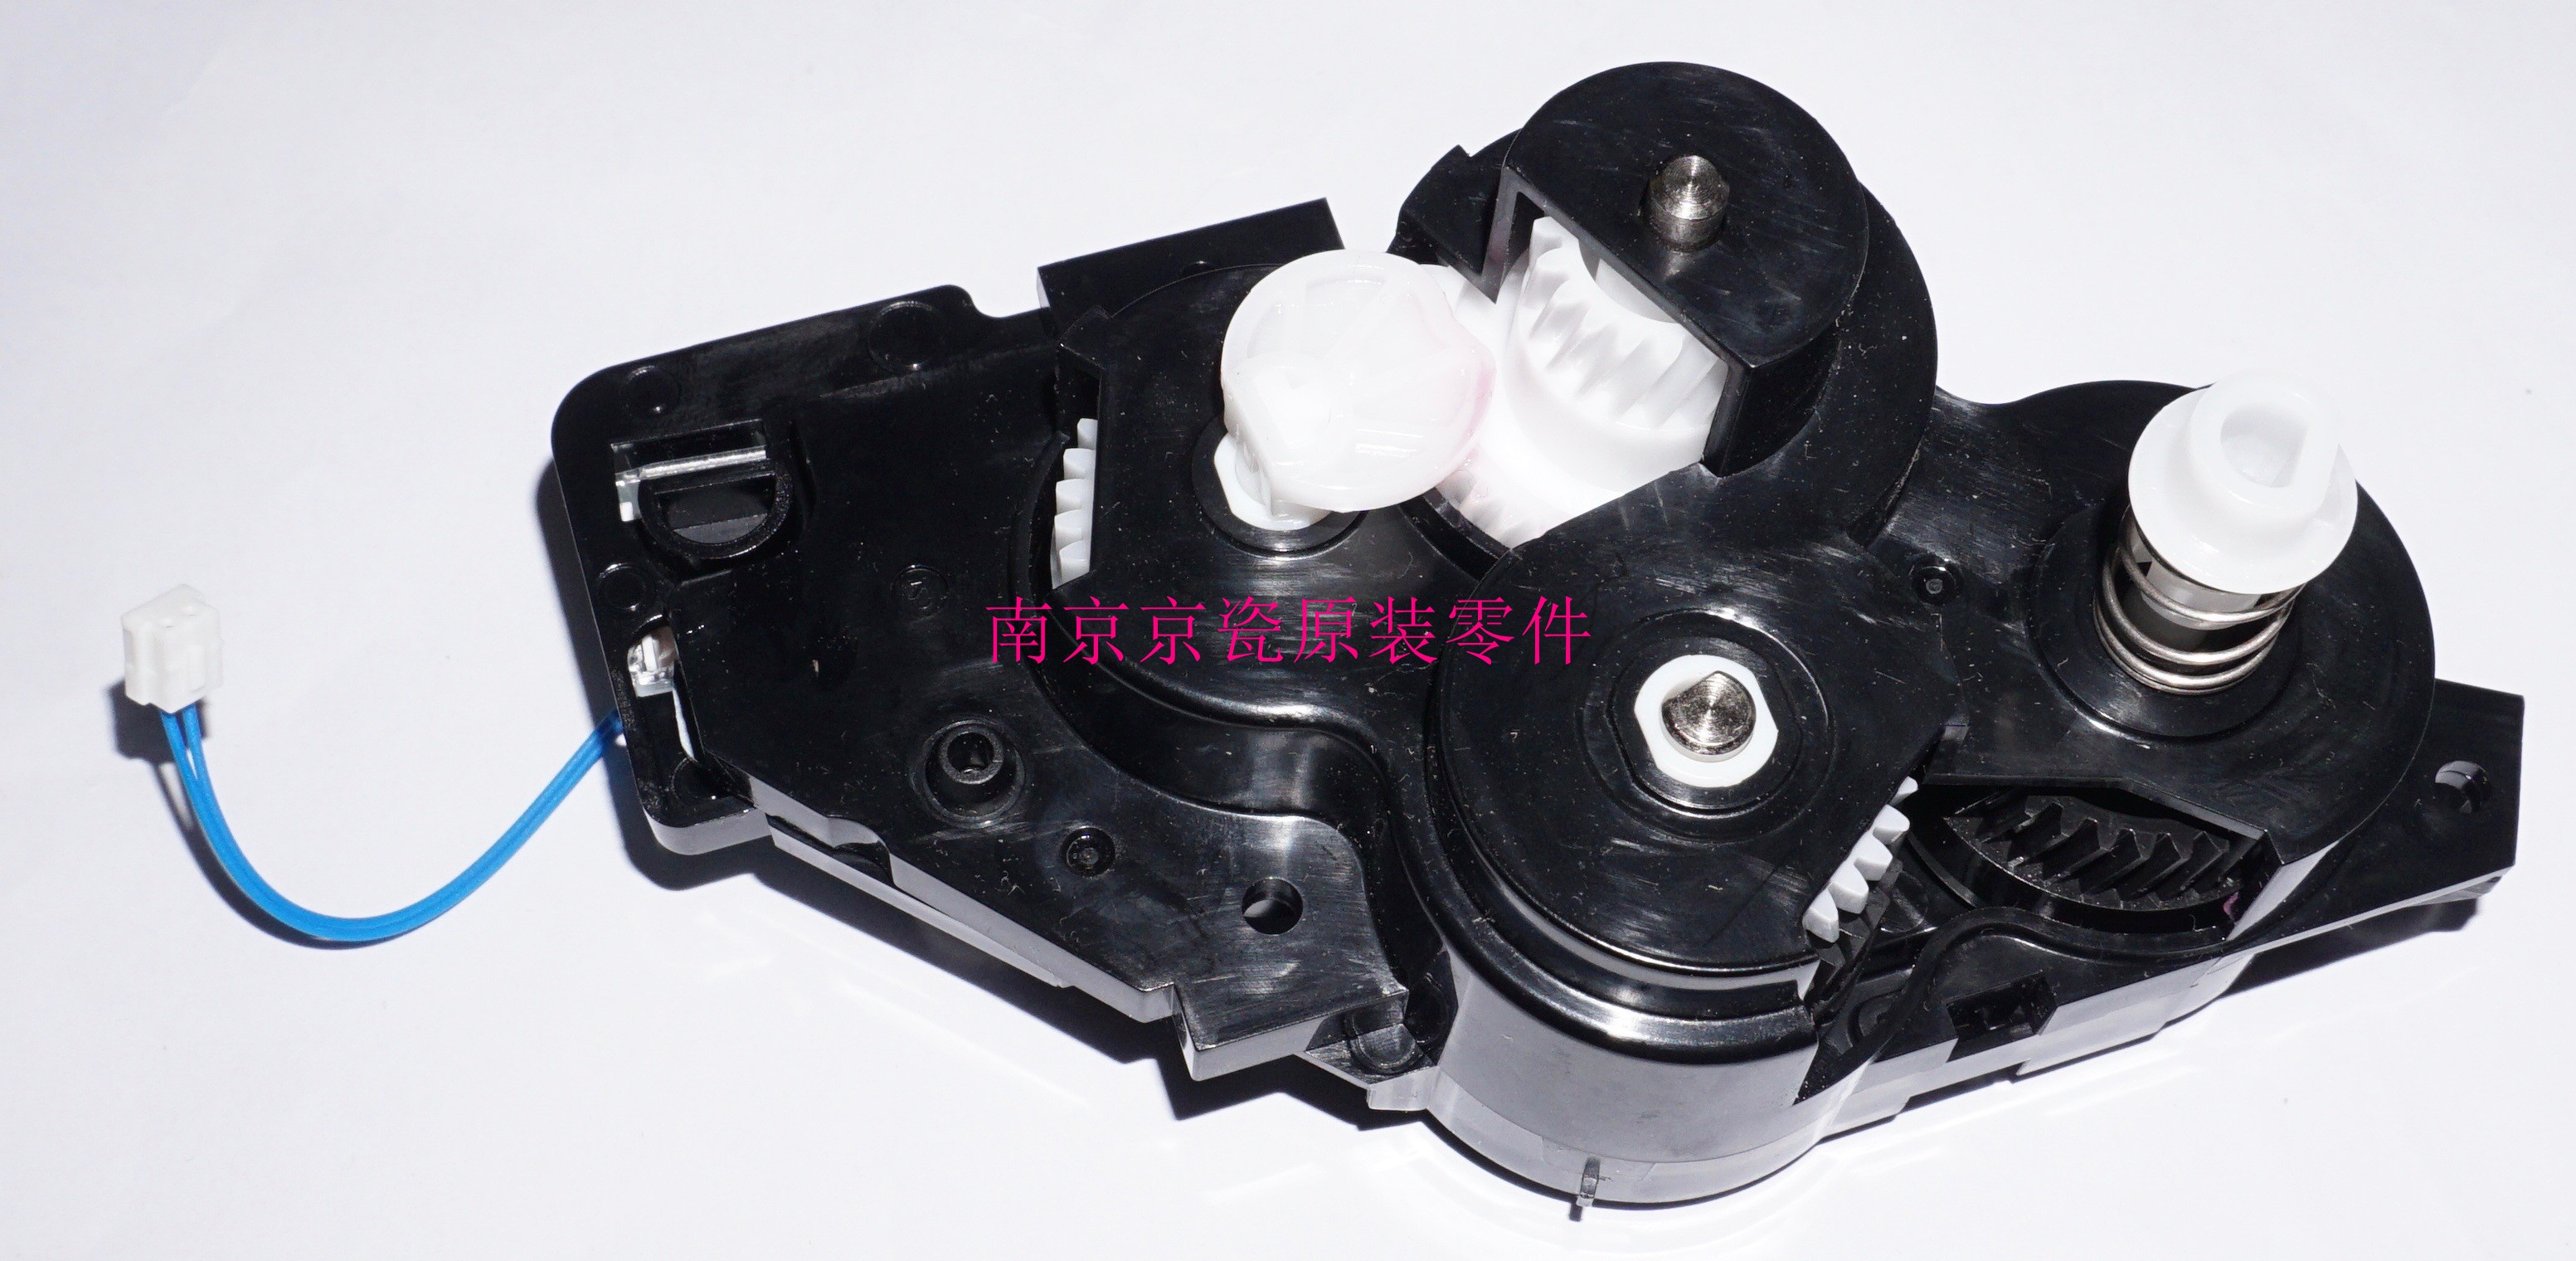 New Original Kyocera 302LV94250 DRIVE FEED ASSY for:FS-4100-4300 P3045-P3060 P4040 M3550 M3560